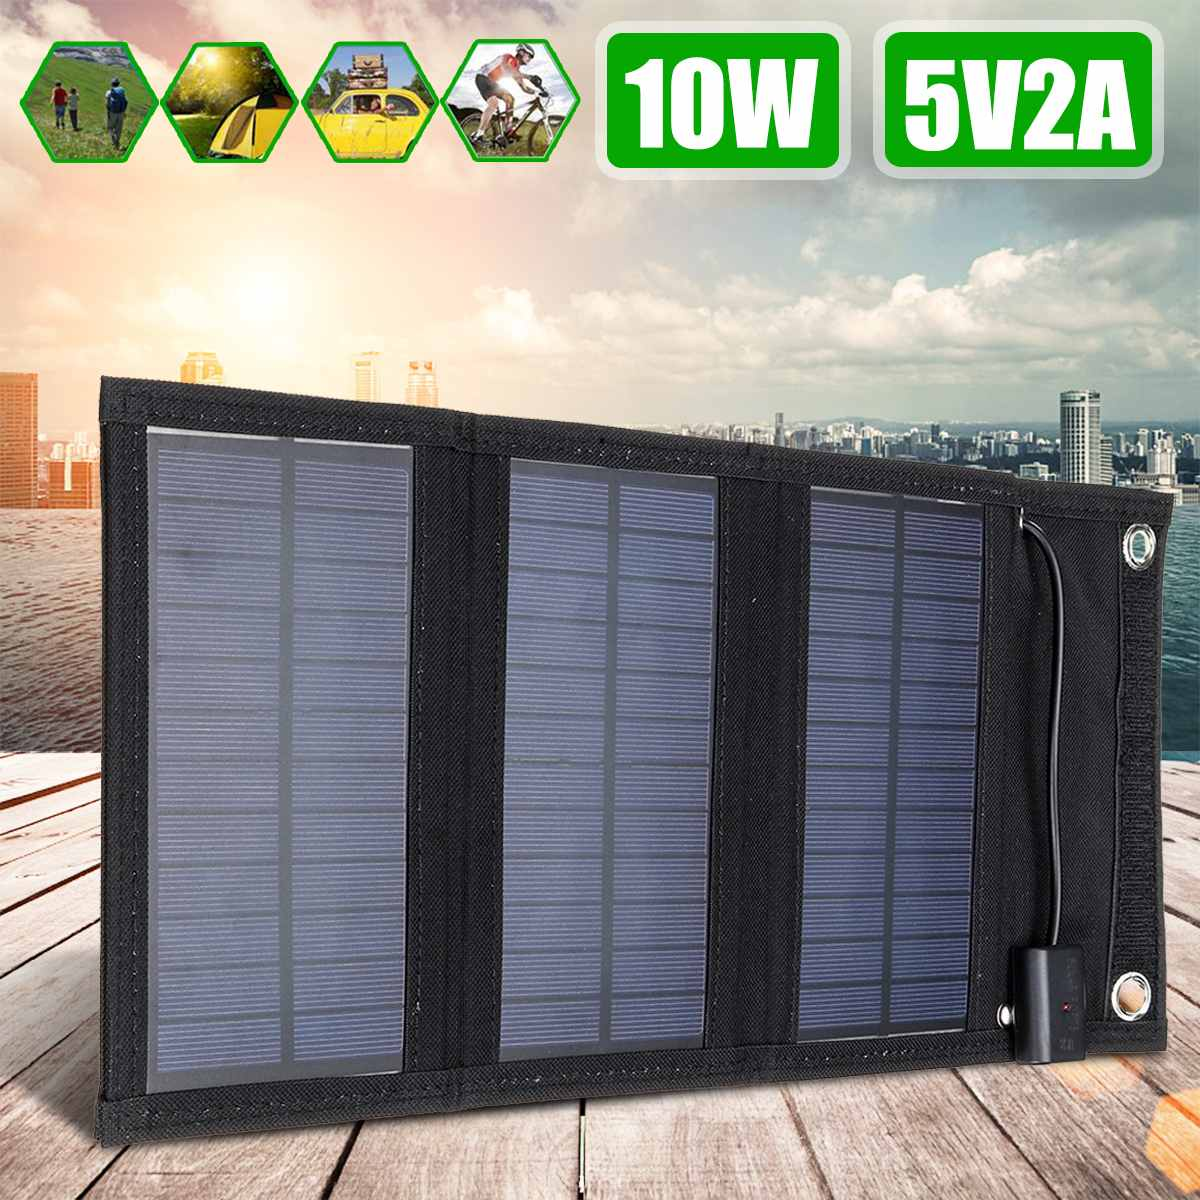 10W Folding <font><b>Solar</b></font> <font><b>Panel</b></font> Charger <font><b>5V</b></font> <font><b>2A</b></font> Foldable Waterproof <font><b>Solar</b></font> <font><b>Panel</b></font> Power Charger Mobile Power Bank for Phone Battery USB Port image